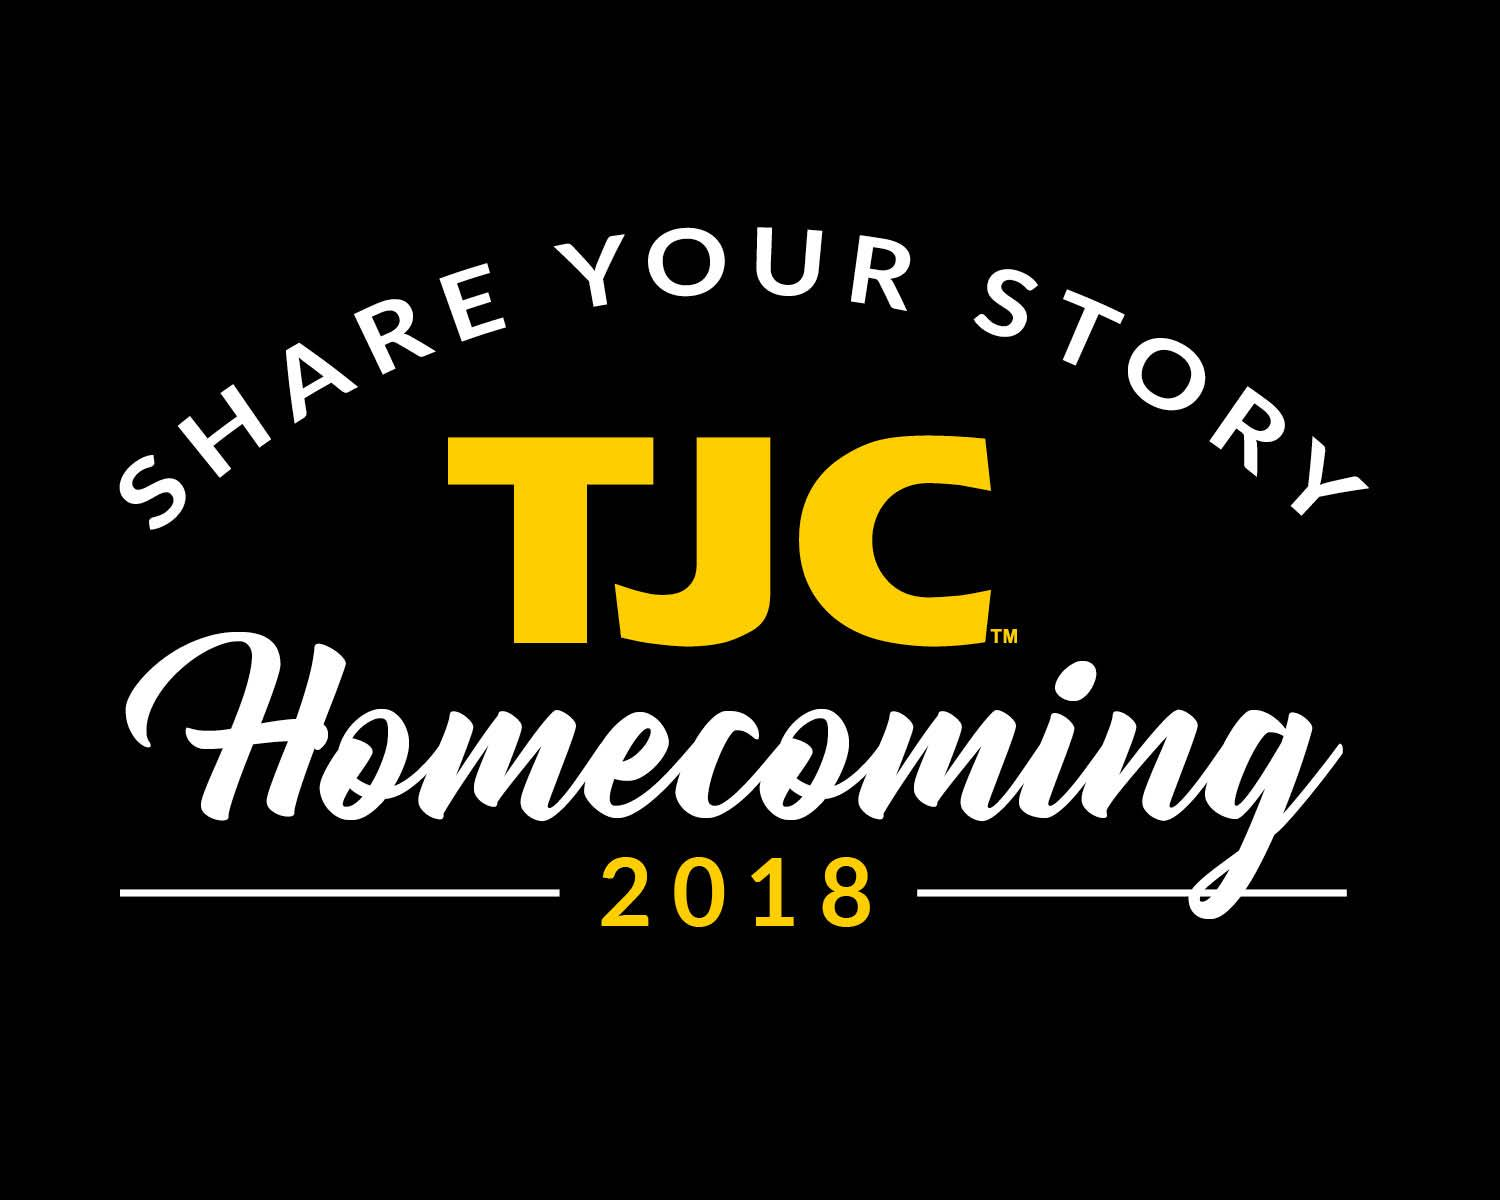 TJC Homecoming 2018